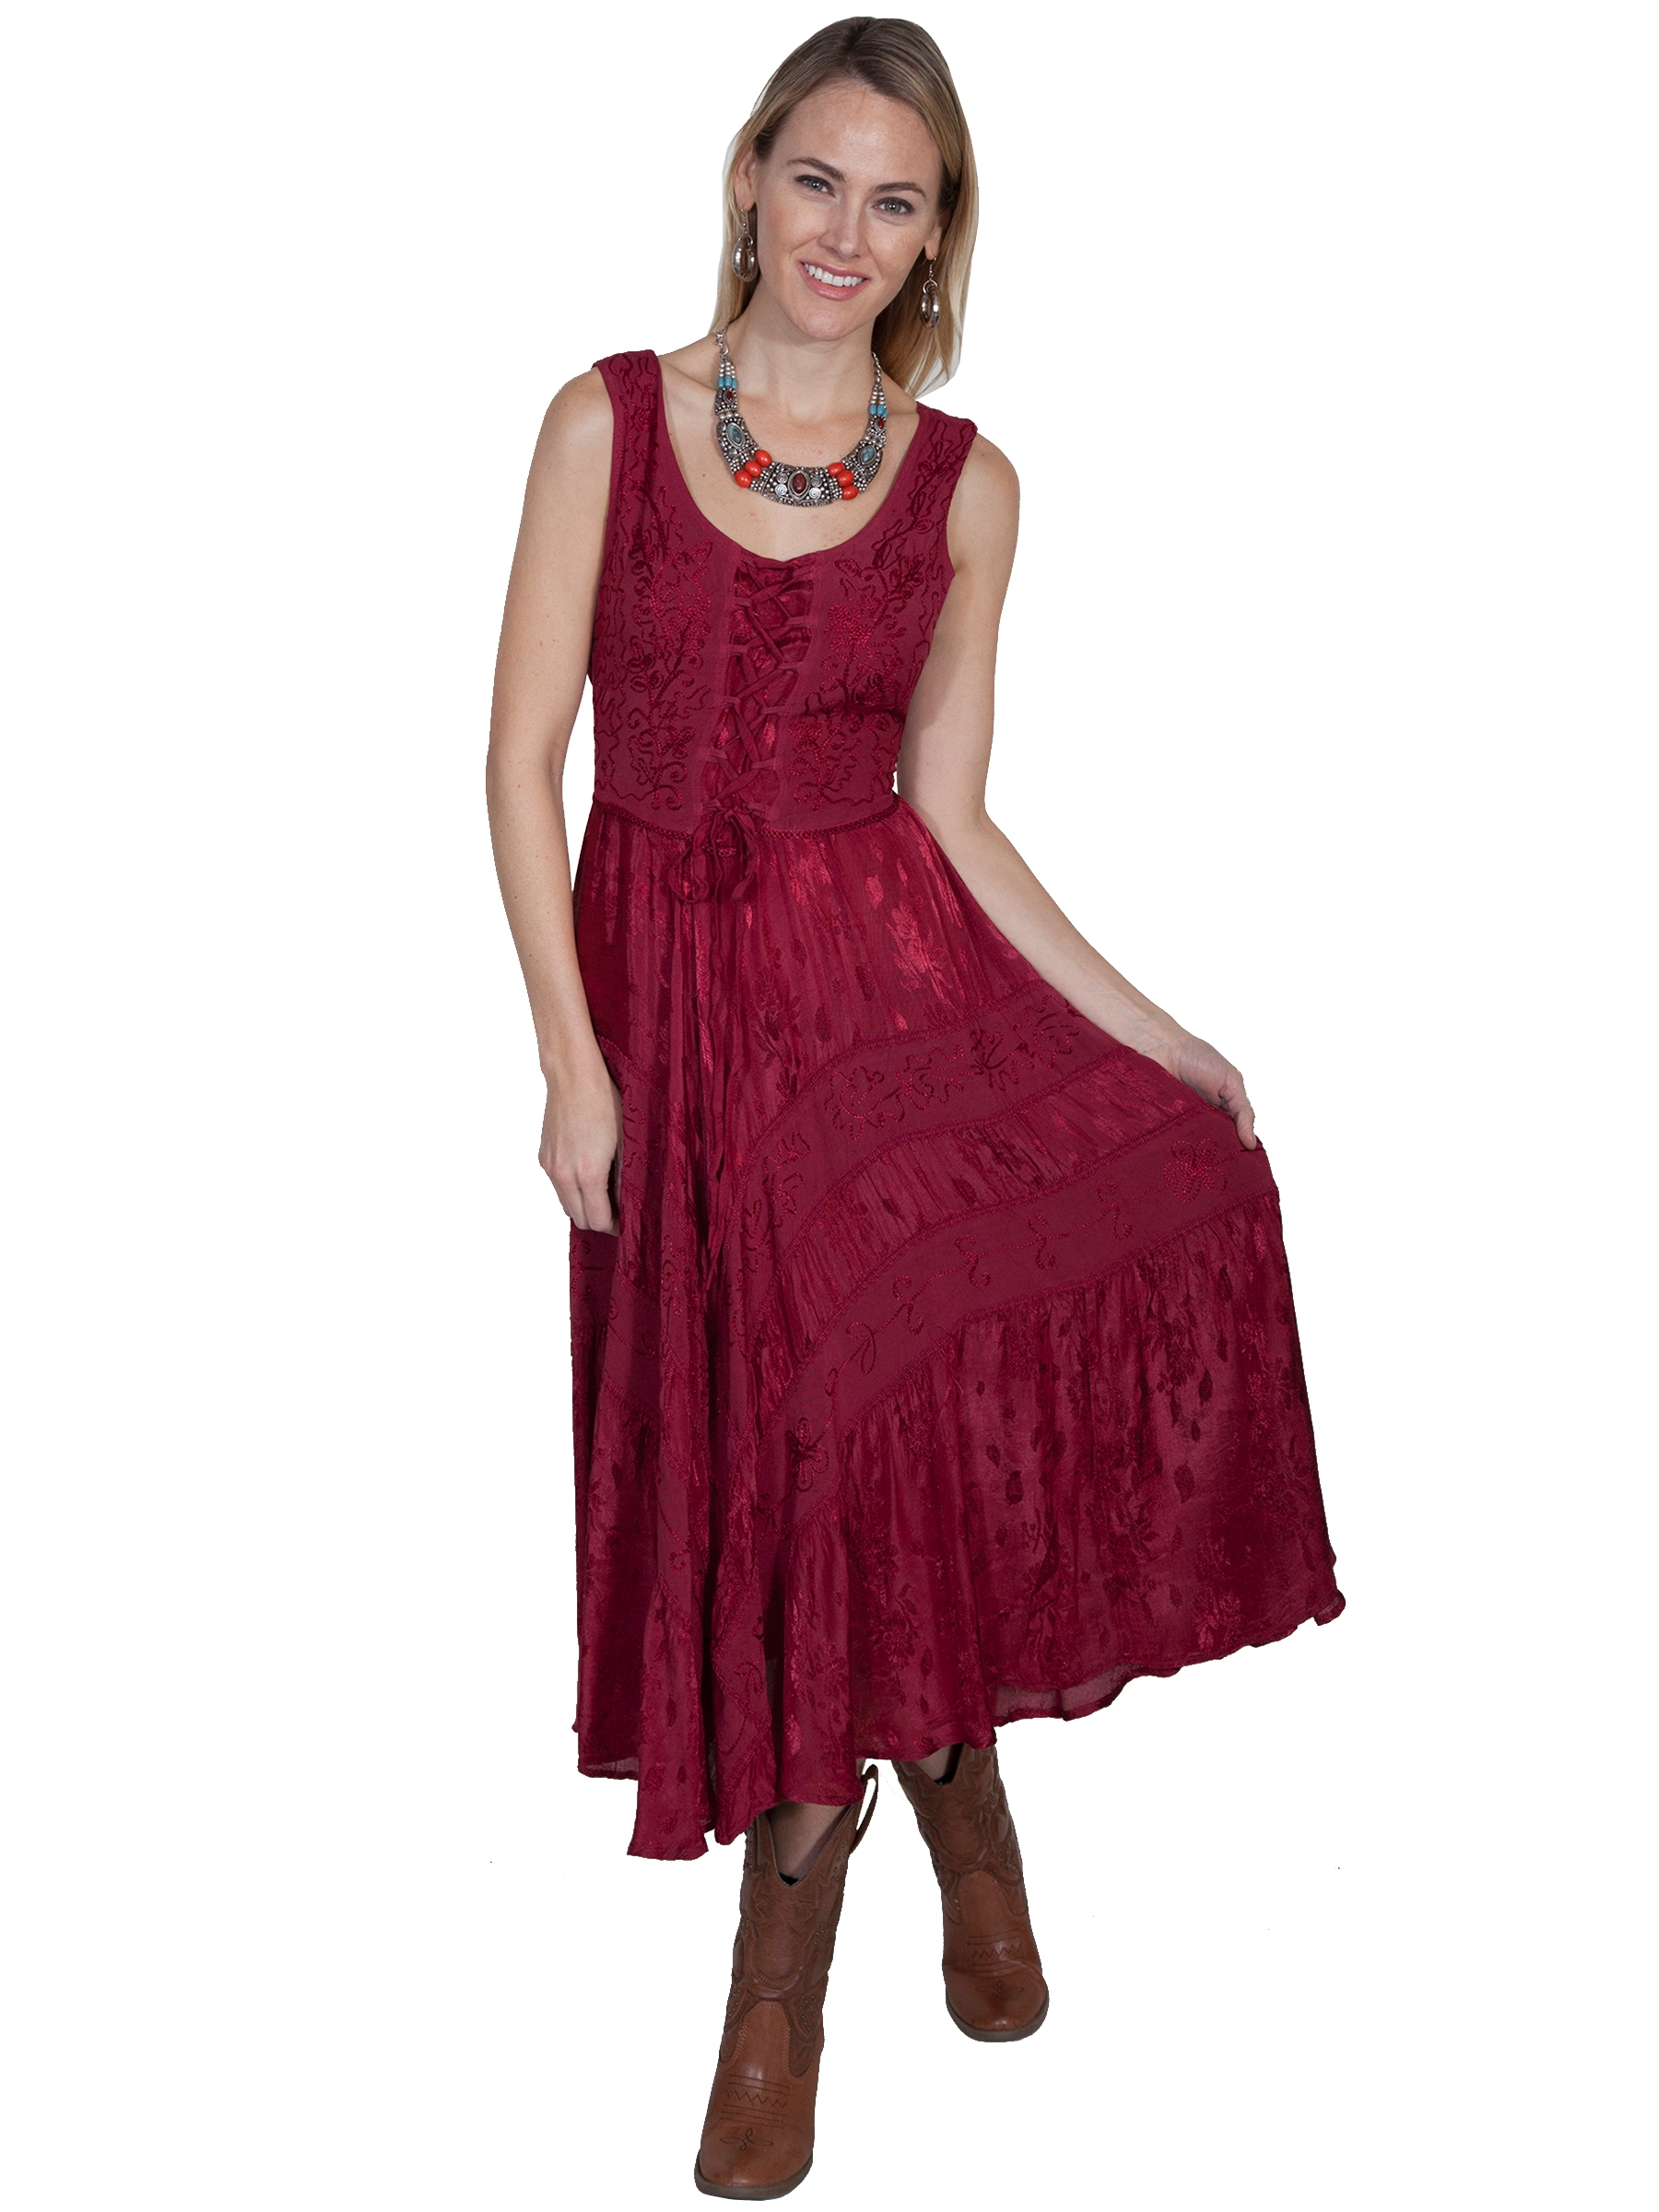 The Scully Womens Full Length Burgundy Western Flowing Dress is a Full length lace-up front sleeveless dress with scrolling fabric throughout and tier panels in skirt area that is 100% rayon.